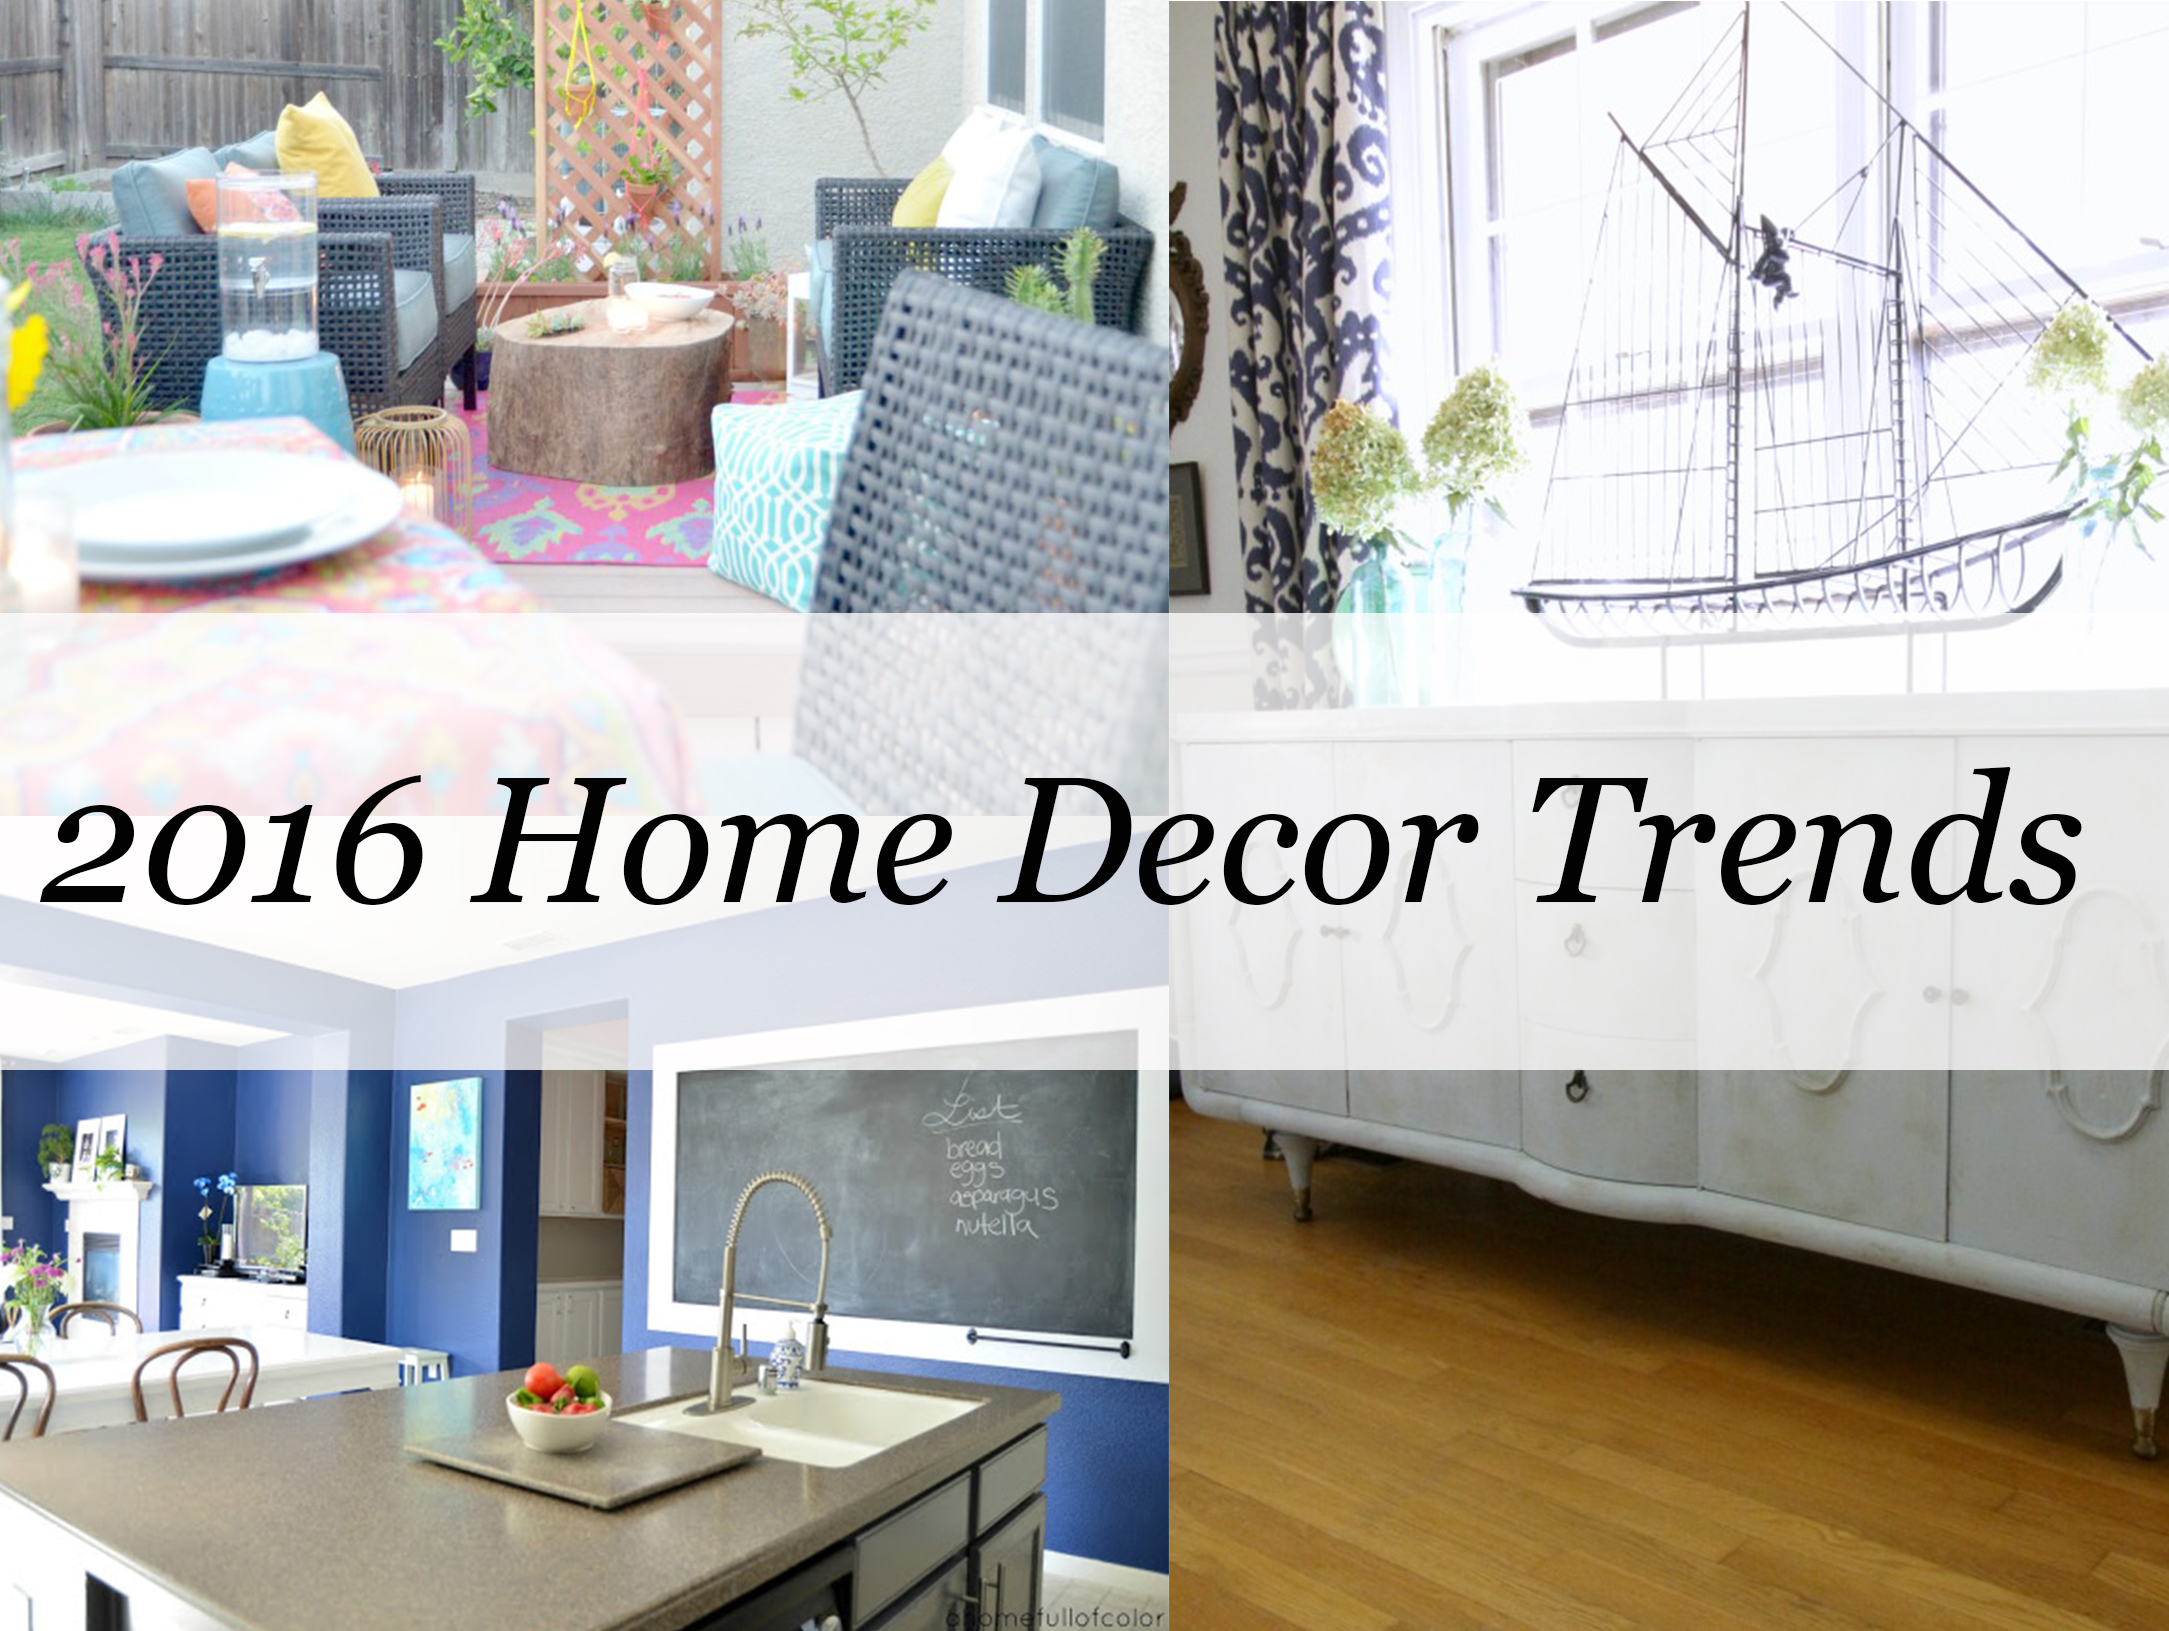 2016 Home Décor Trends